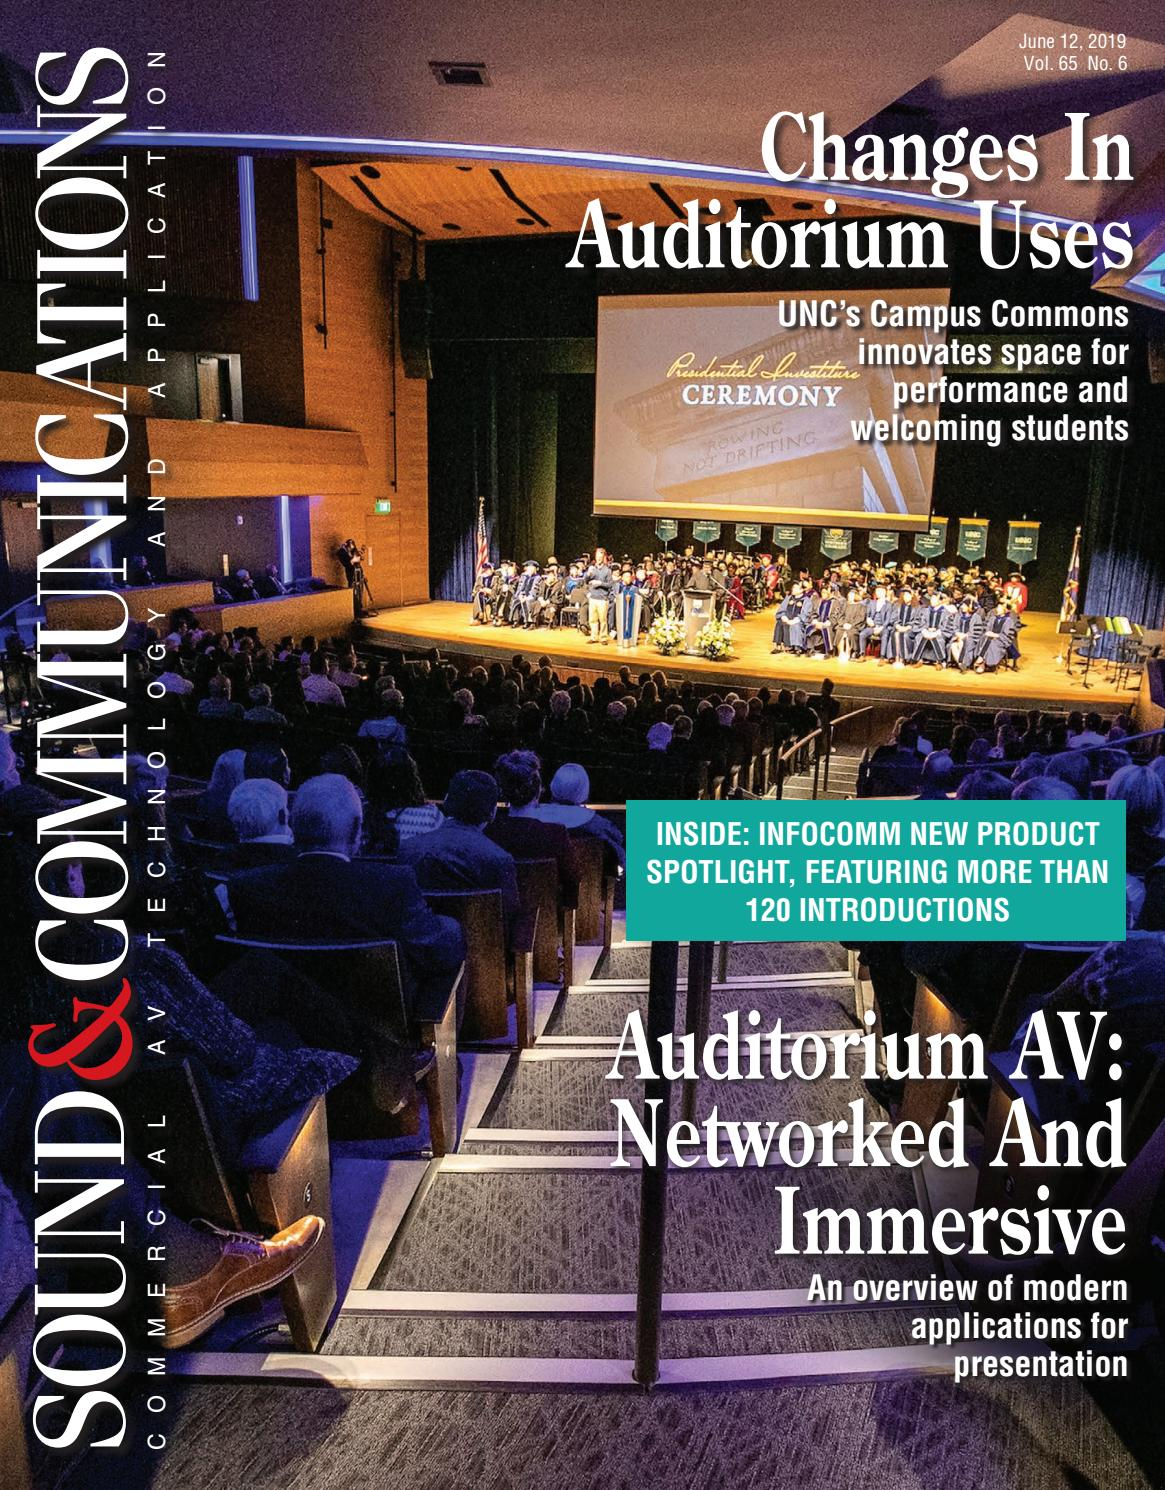 Sound & Communications June 2019, Vol 65 No 6 by Sound